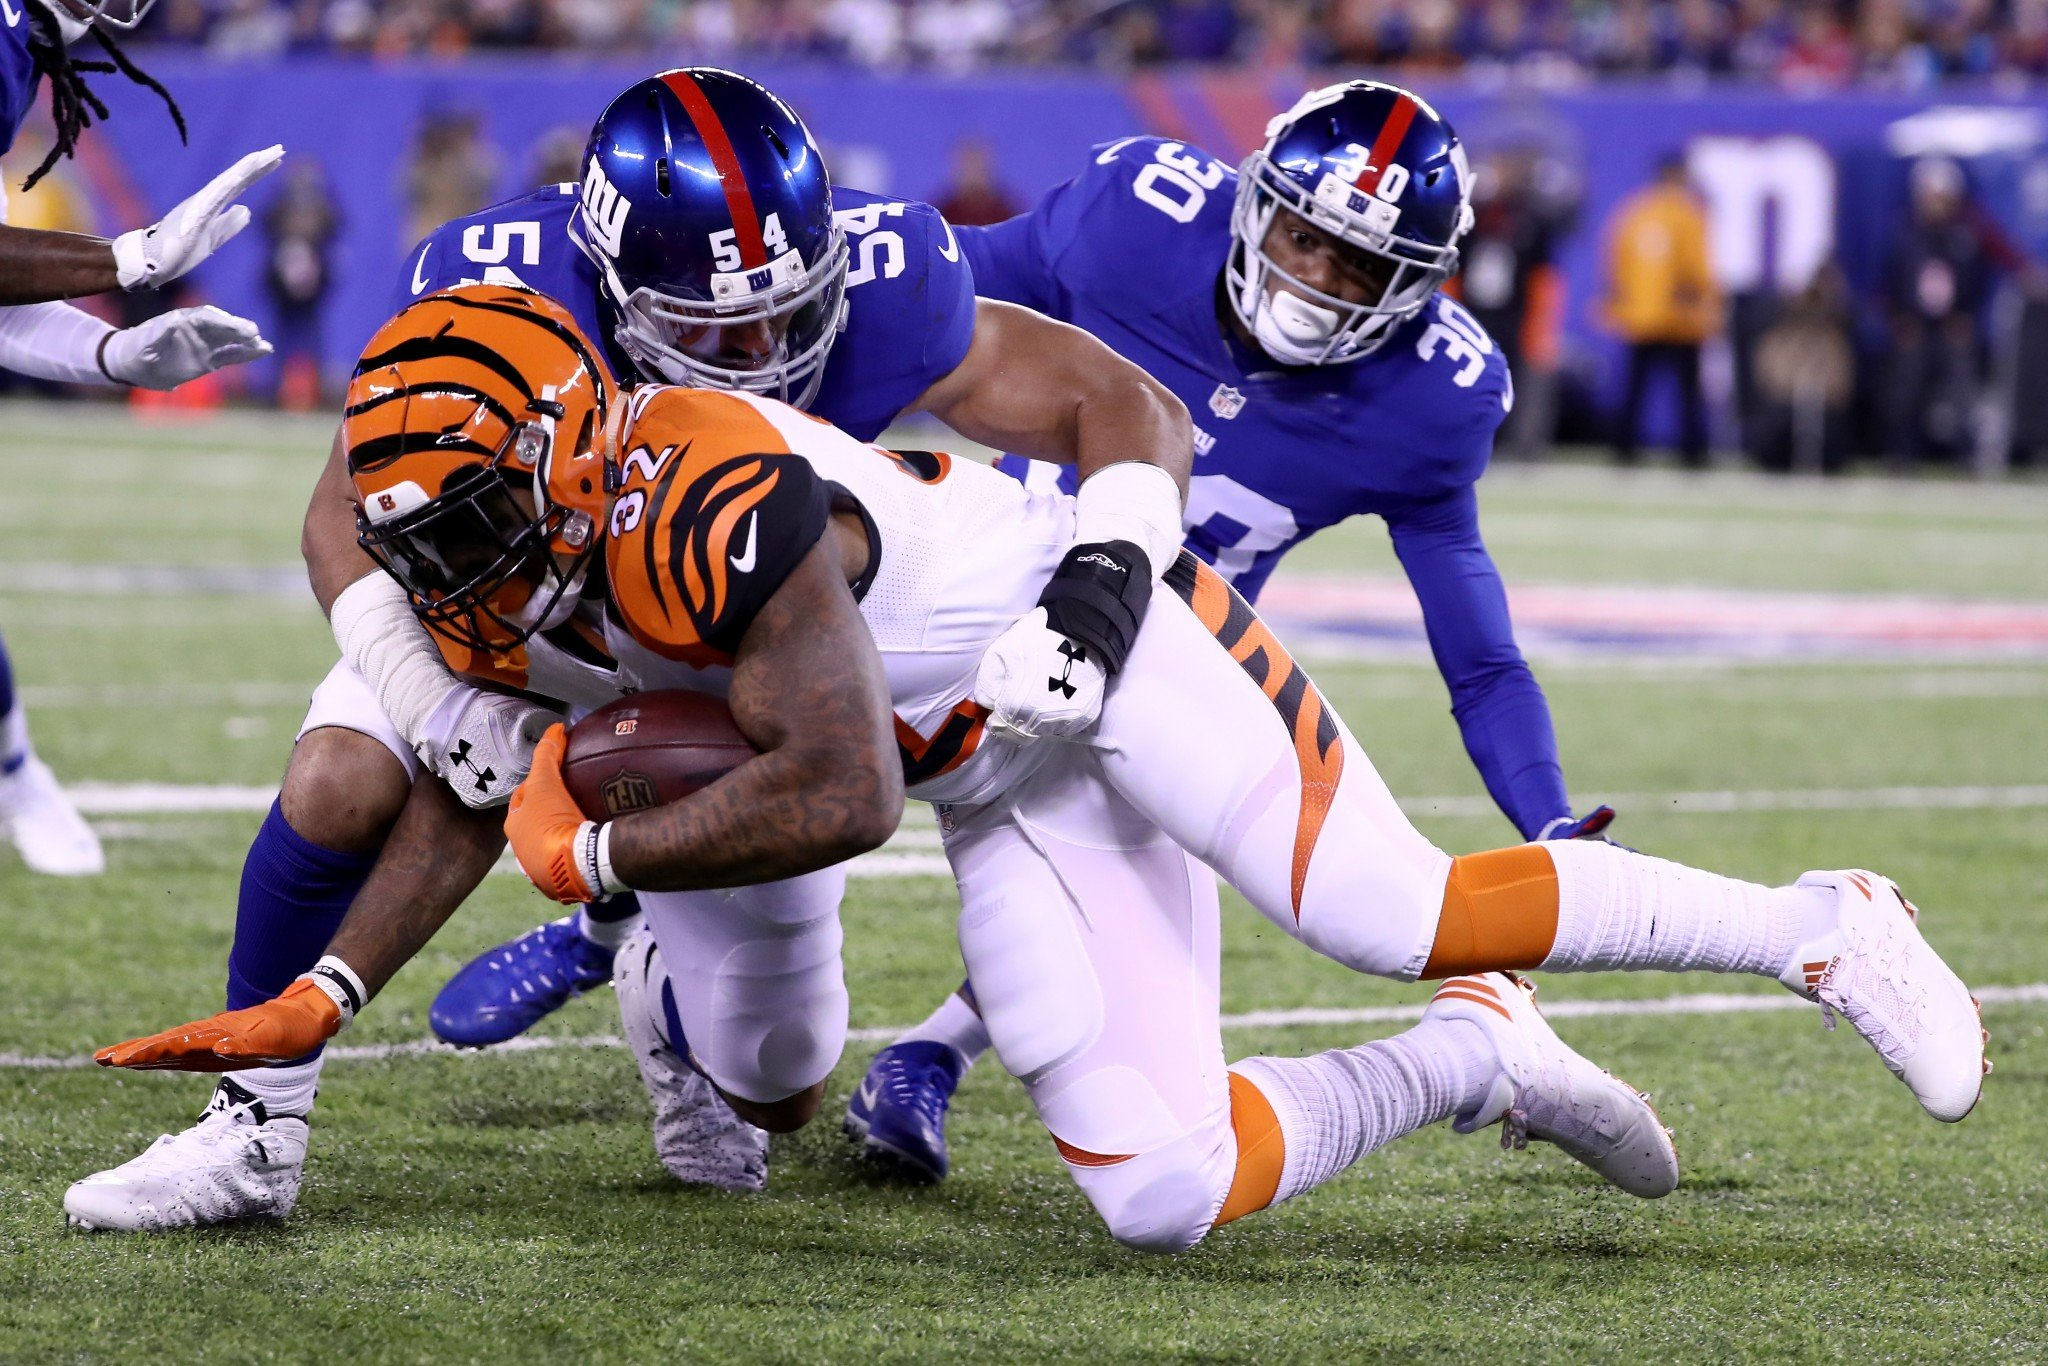 Olivier Vernon and the New York Giants delivered defensively in a win over the Cincinnati Bengals on Monday. (Getty Images)